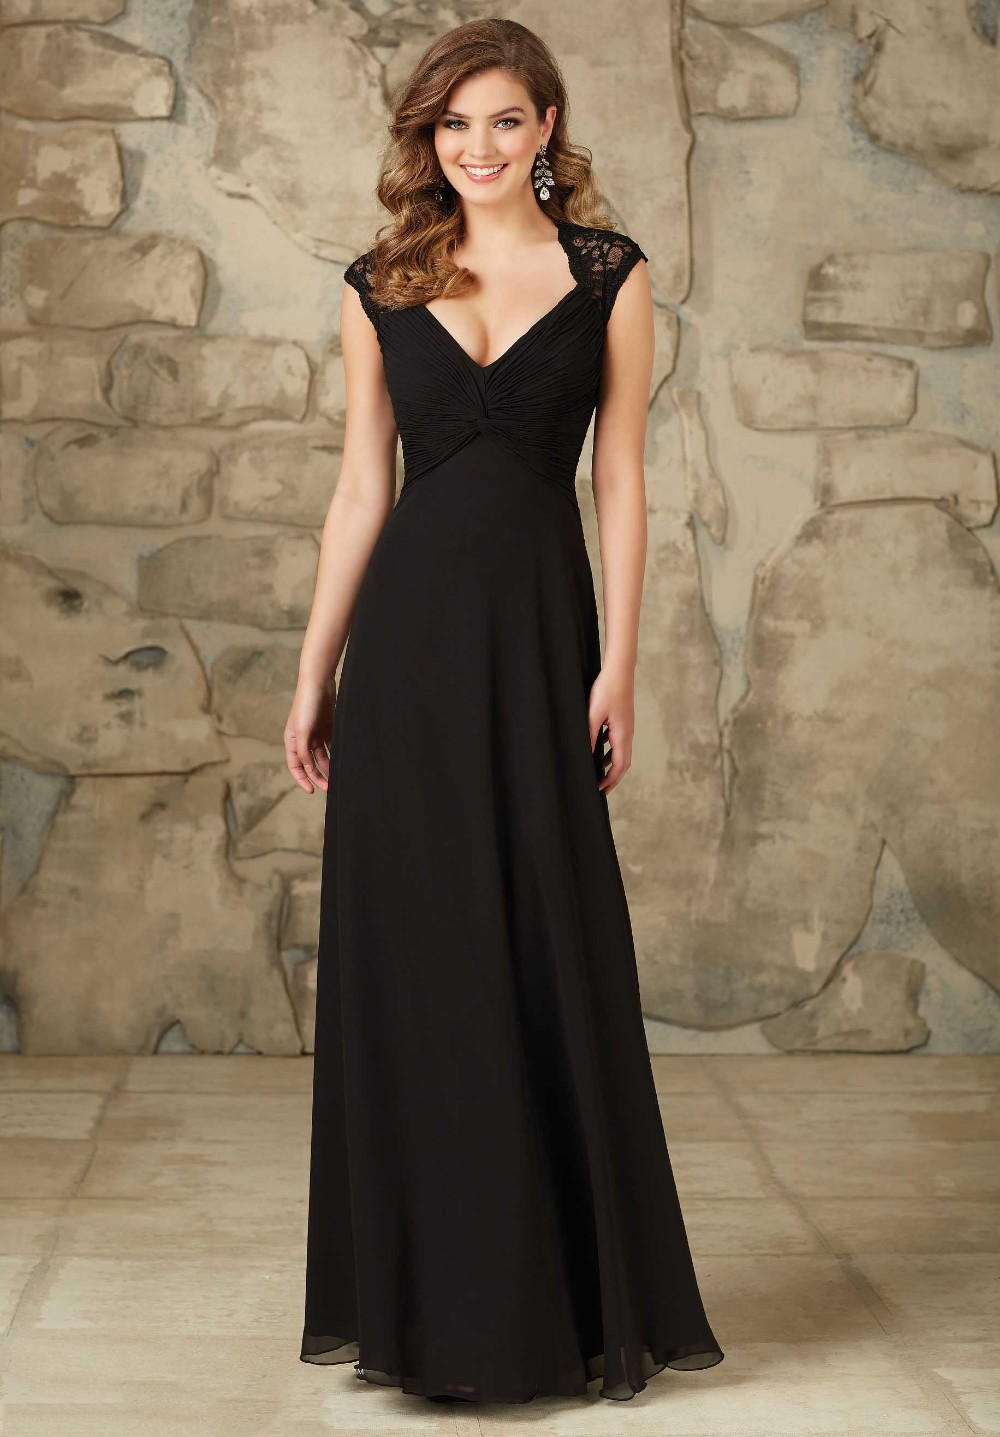 Maternity Formal Wedding Party Dress Long Chiffon Black Lace Bridesmaid Dresses Plus Size 2017 Open Back Maid Of Honor Gown In From